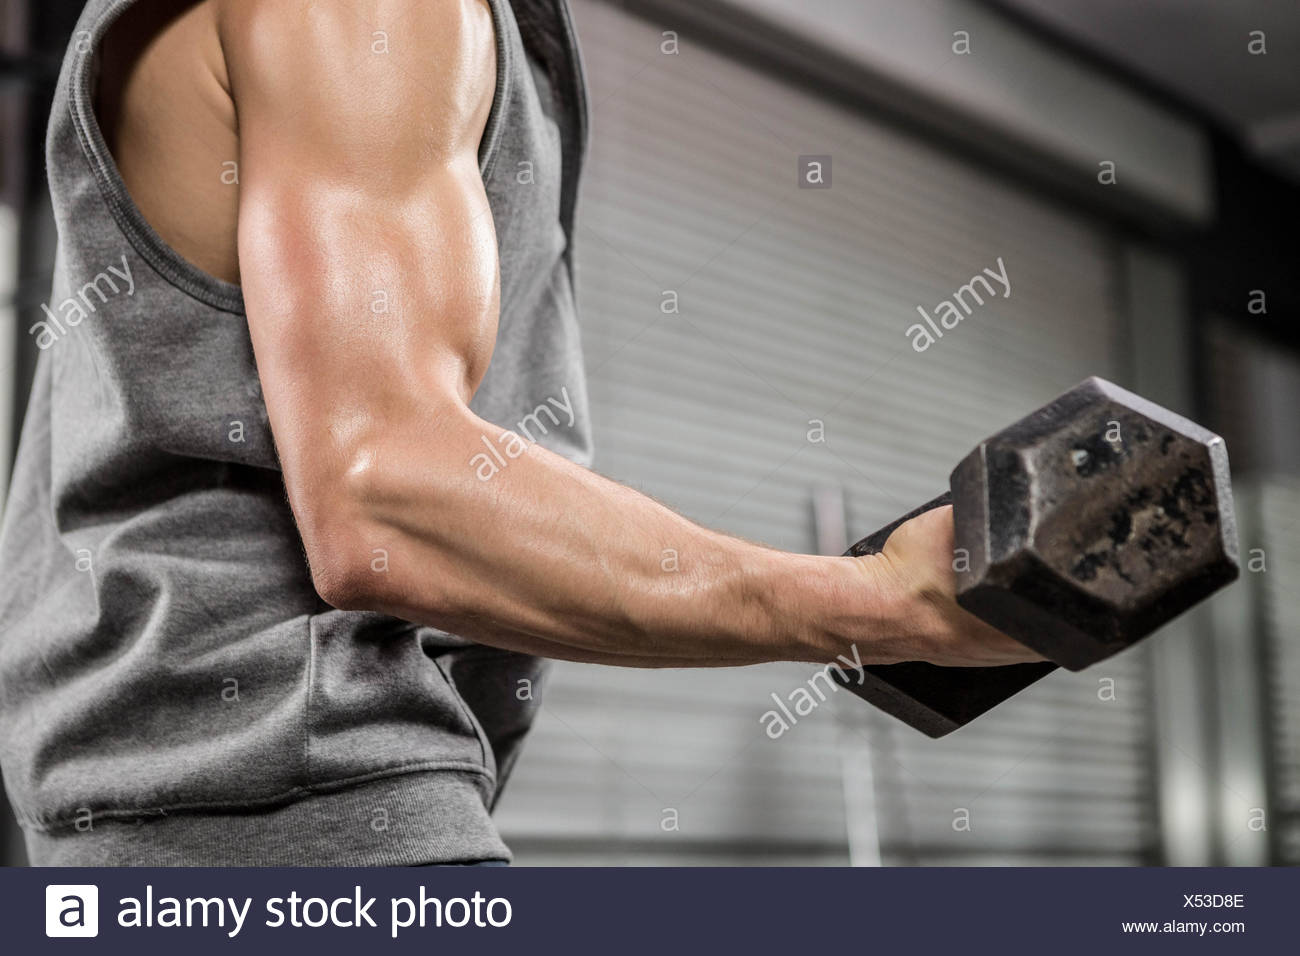 Muscular man with grey jumper lifting dumbbell - Stock Image